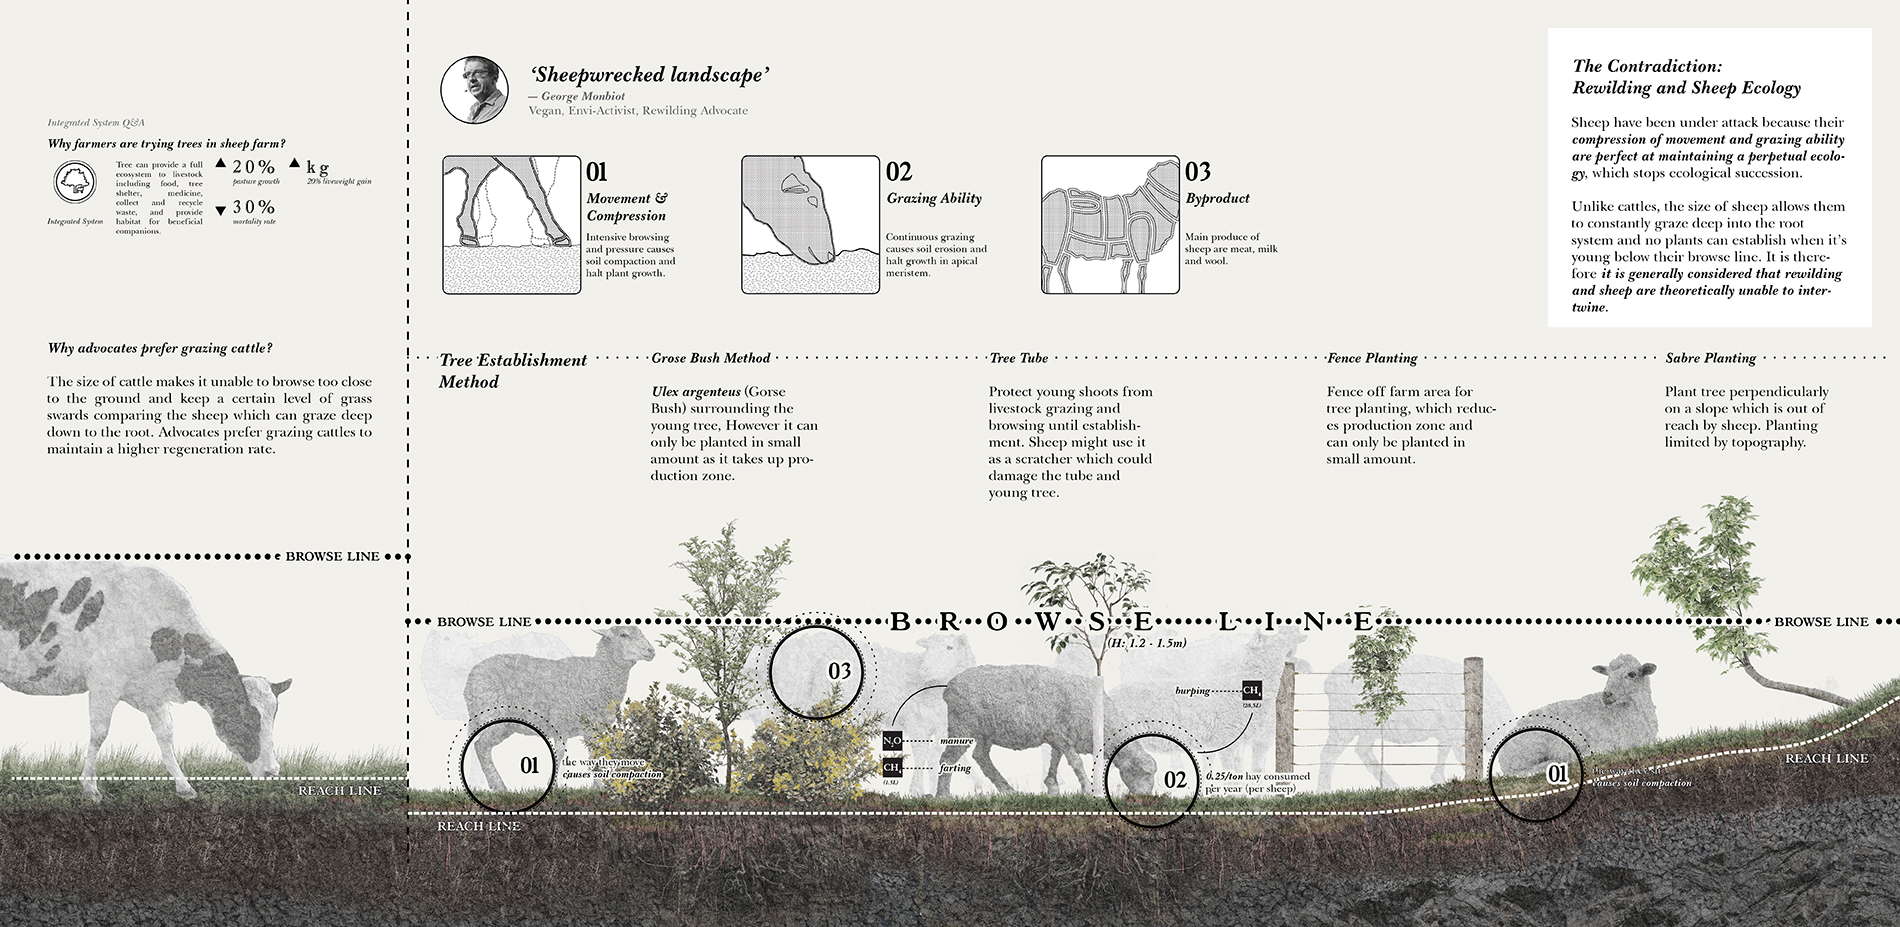 The Contradiction: Rewilding and Sheep Ecology